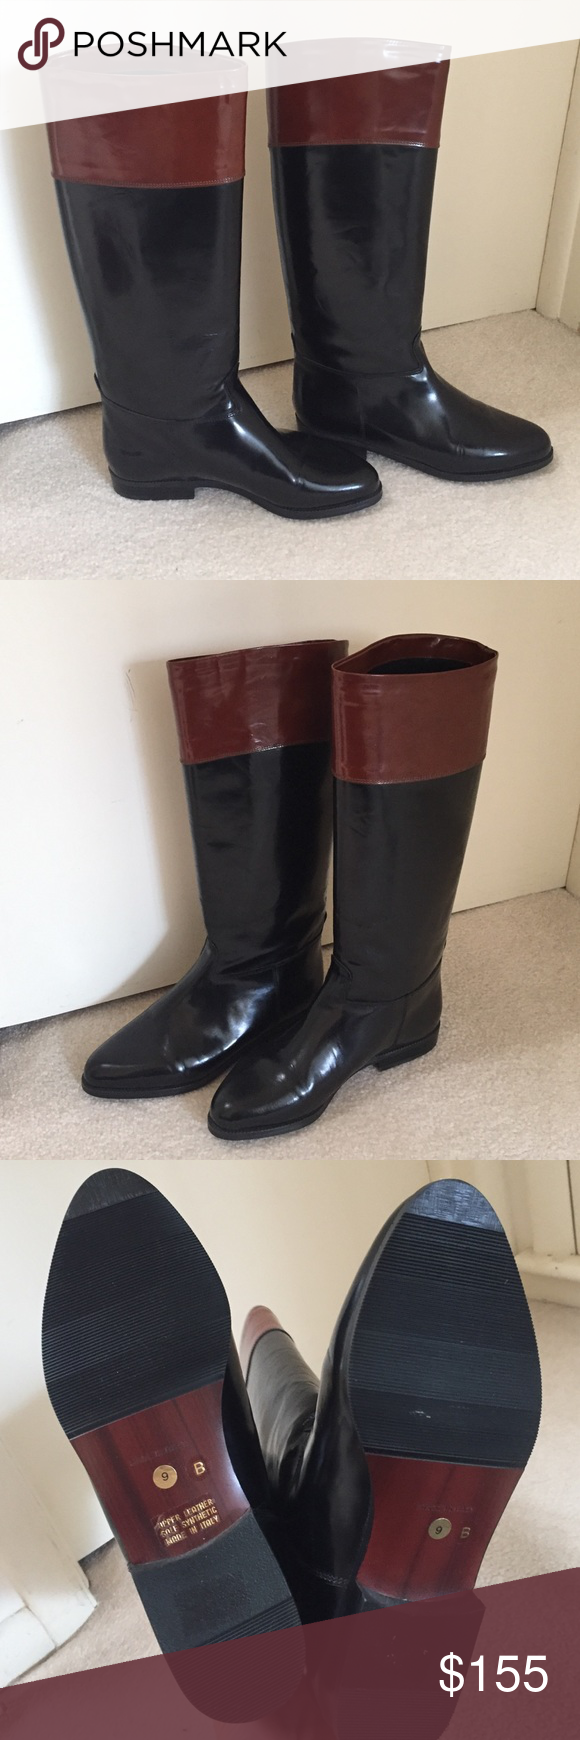 Italian Two Tone Boots Italian leather boots purchased in Italy. Beautiful. Never worn. They still have the new glossy leather look. Listed under Anthropologie for exposure. Make an offer! Anthropologie Shoes